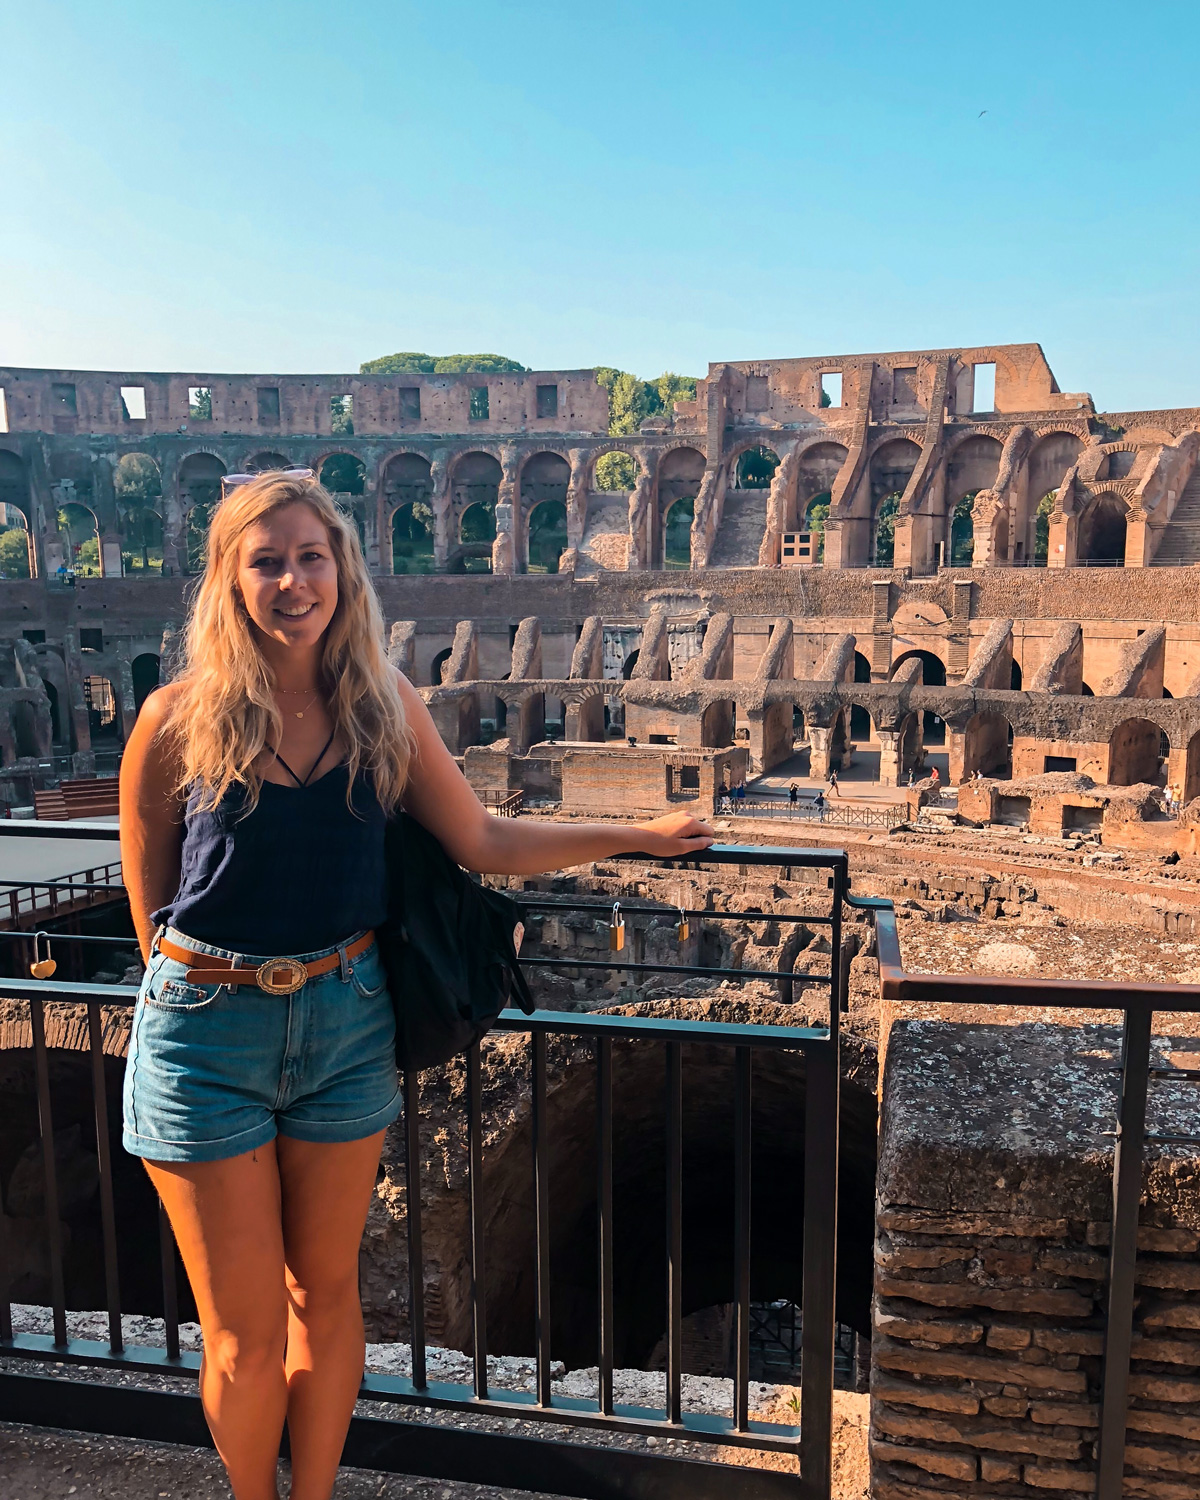 The colosseum was definitely one of my highlights from 2018!